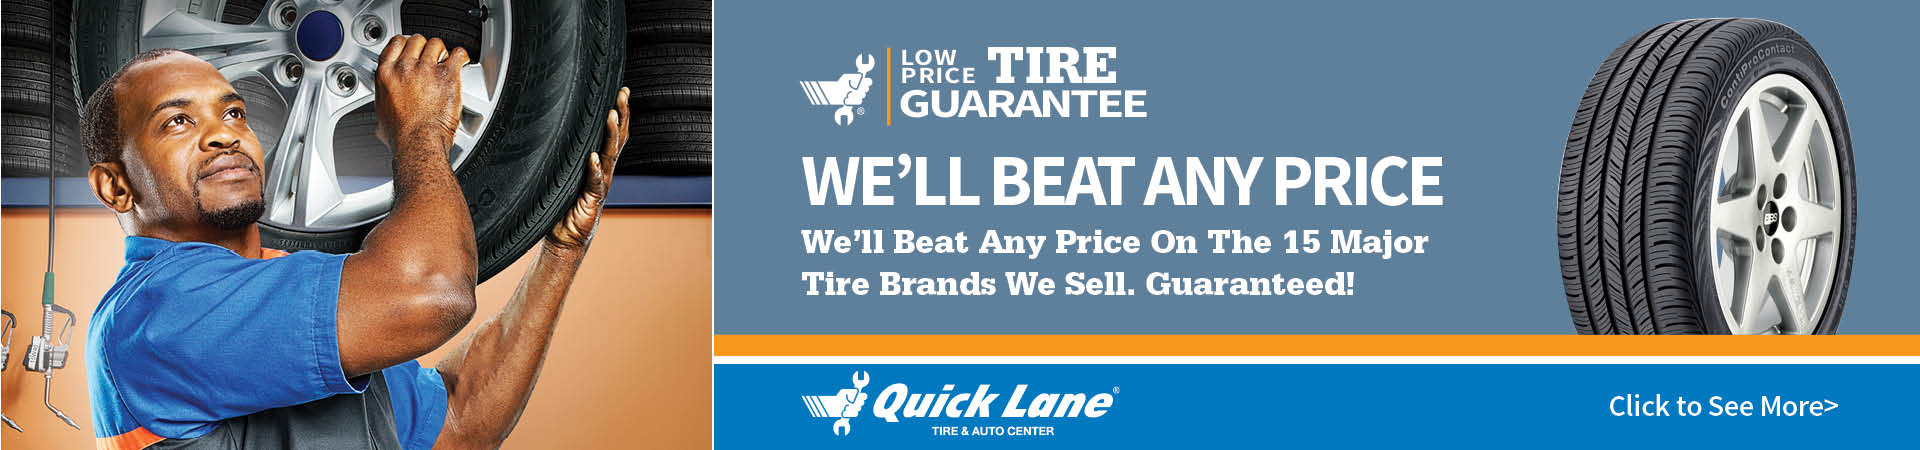 Low Price Tire Guarantee Planet Ford